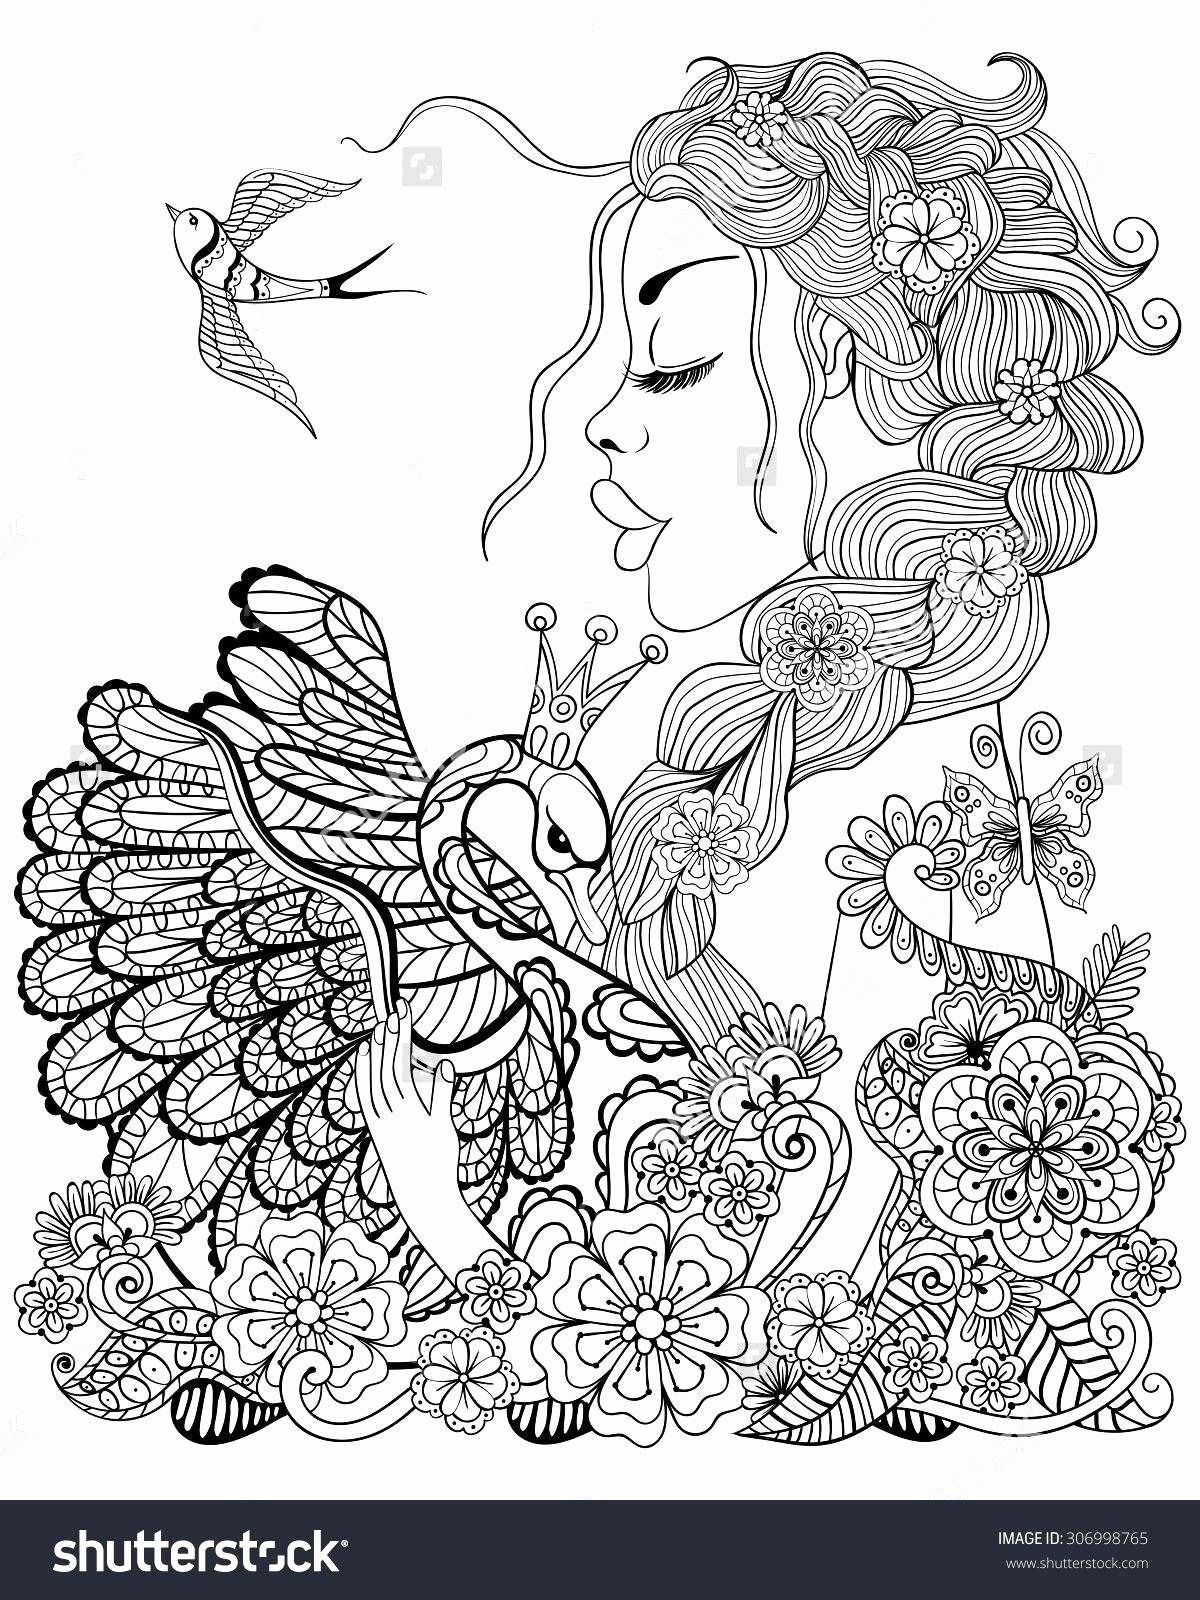 Coloring Pages For Girls Hard : coloring, pages, girls, Space, Astronomy, Coloring, Books